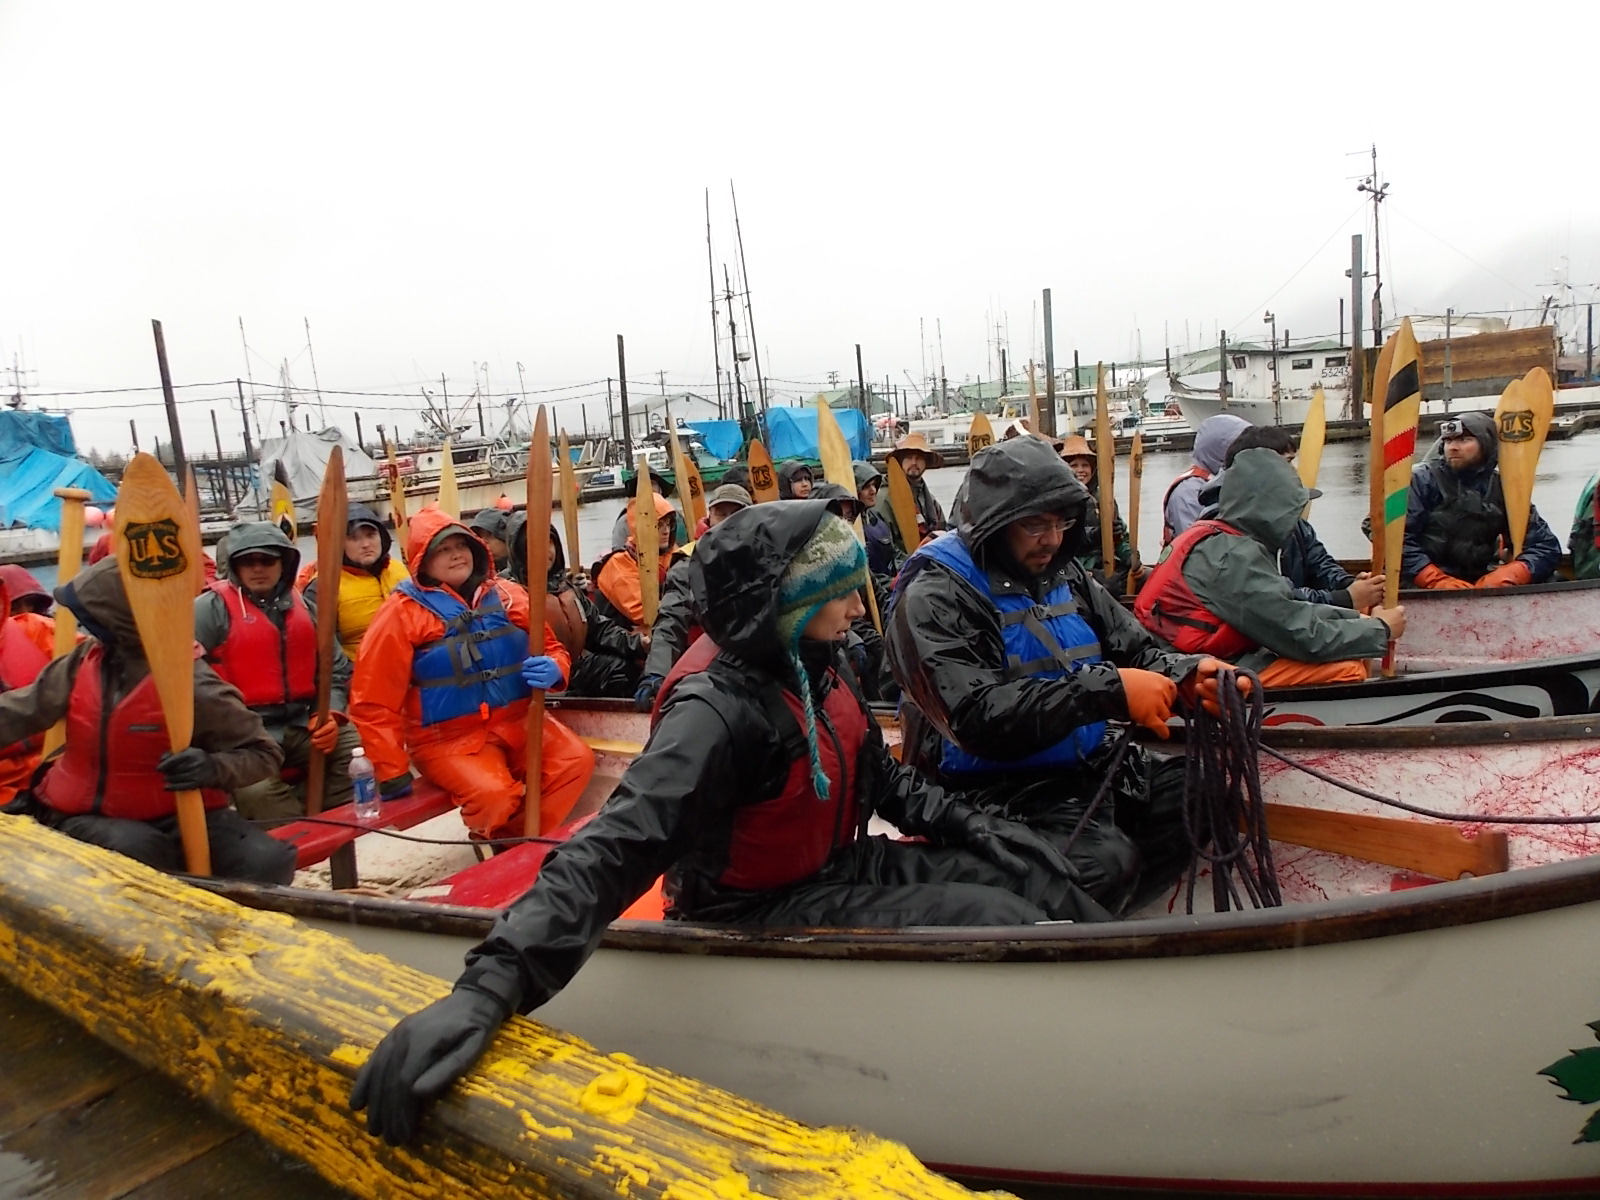 Canoes leave Petersburg for Wrangell